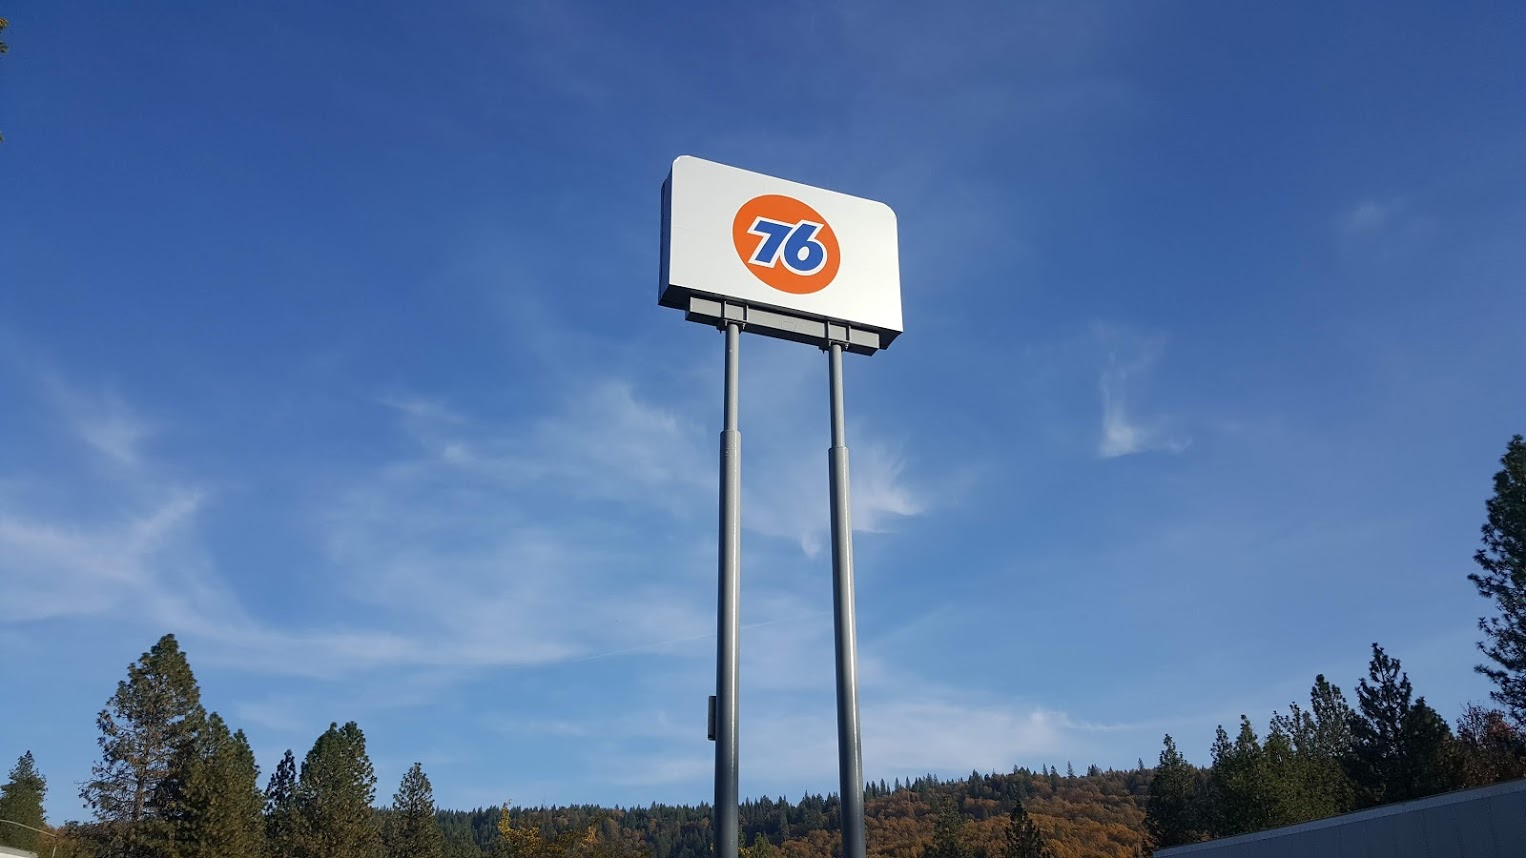 76 Gas Pylon